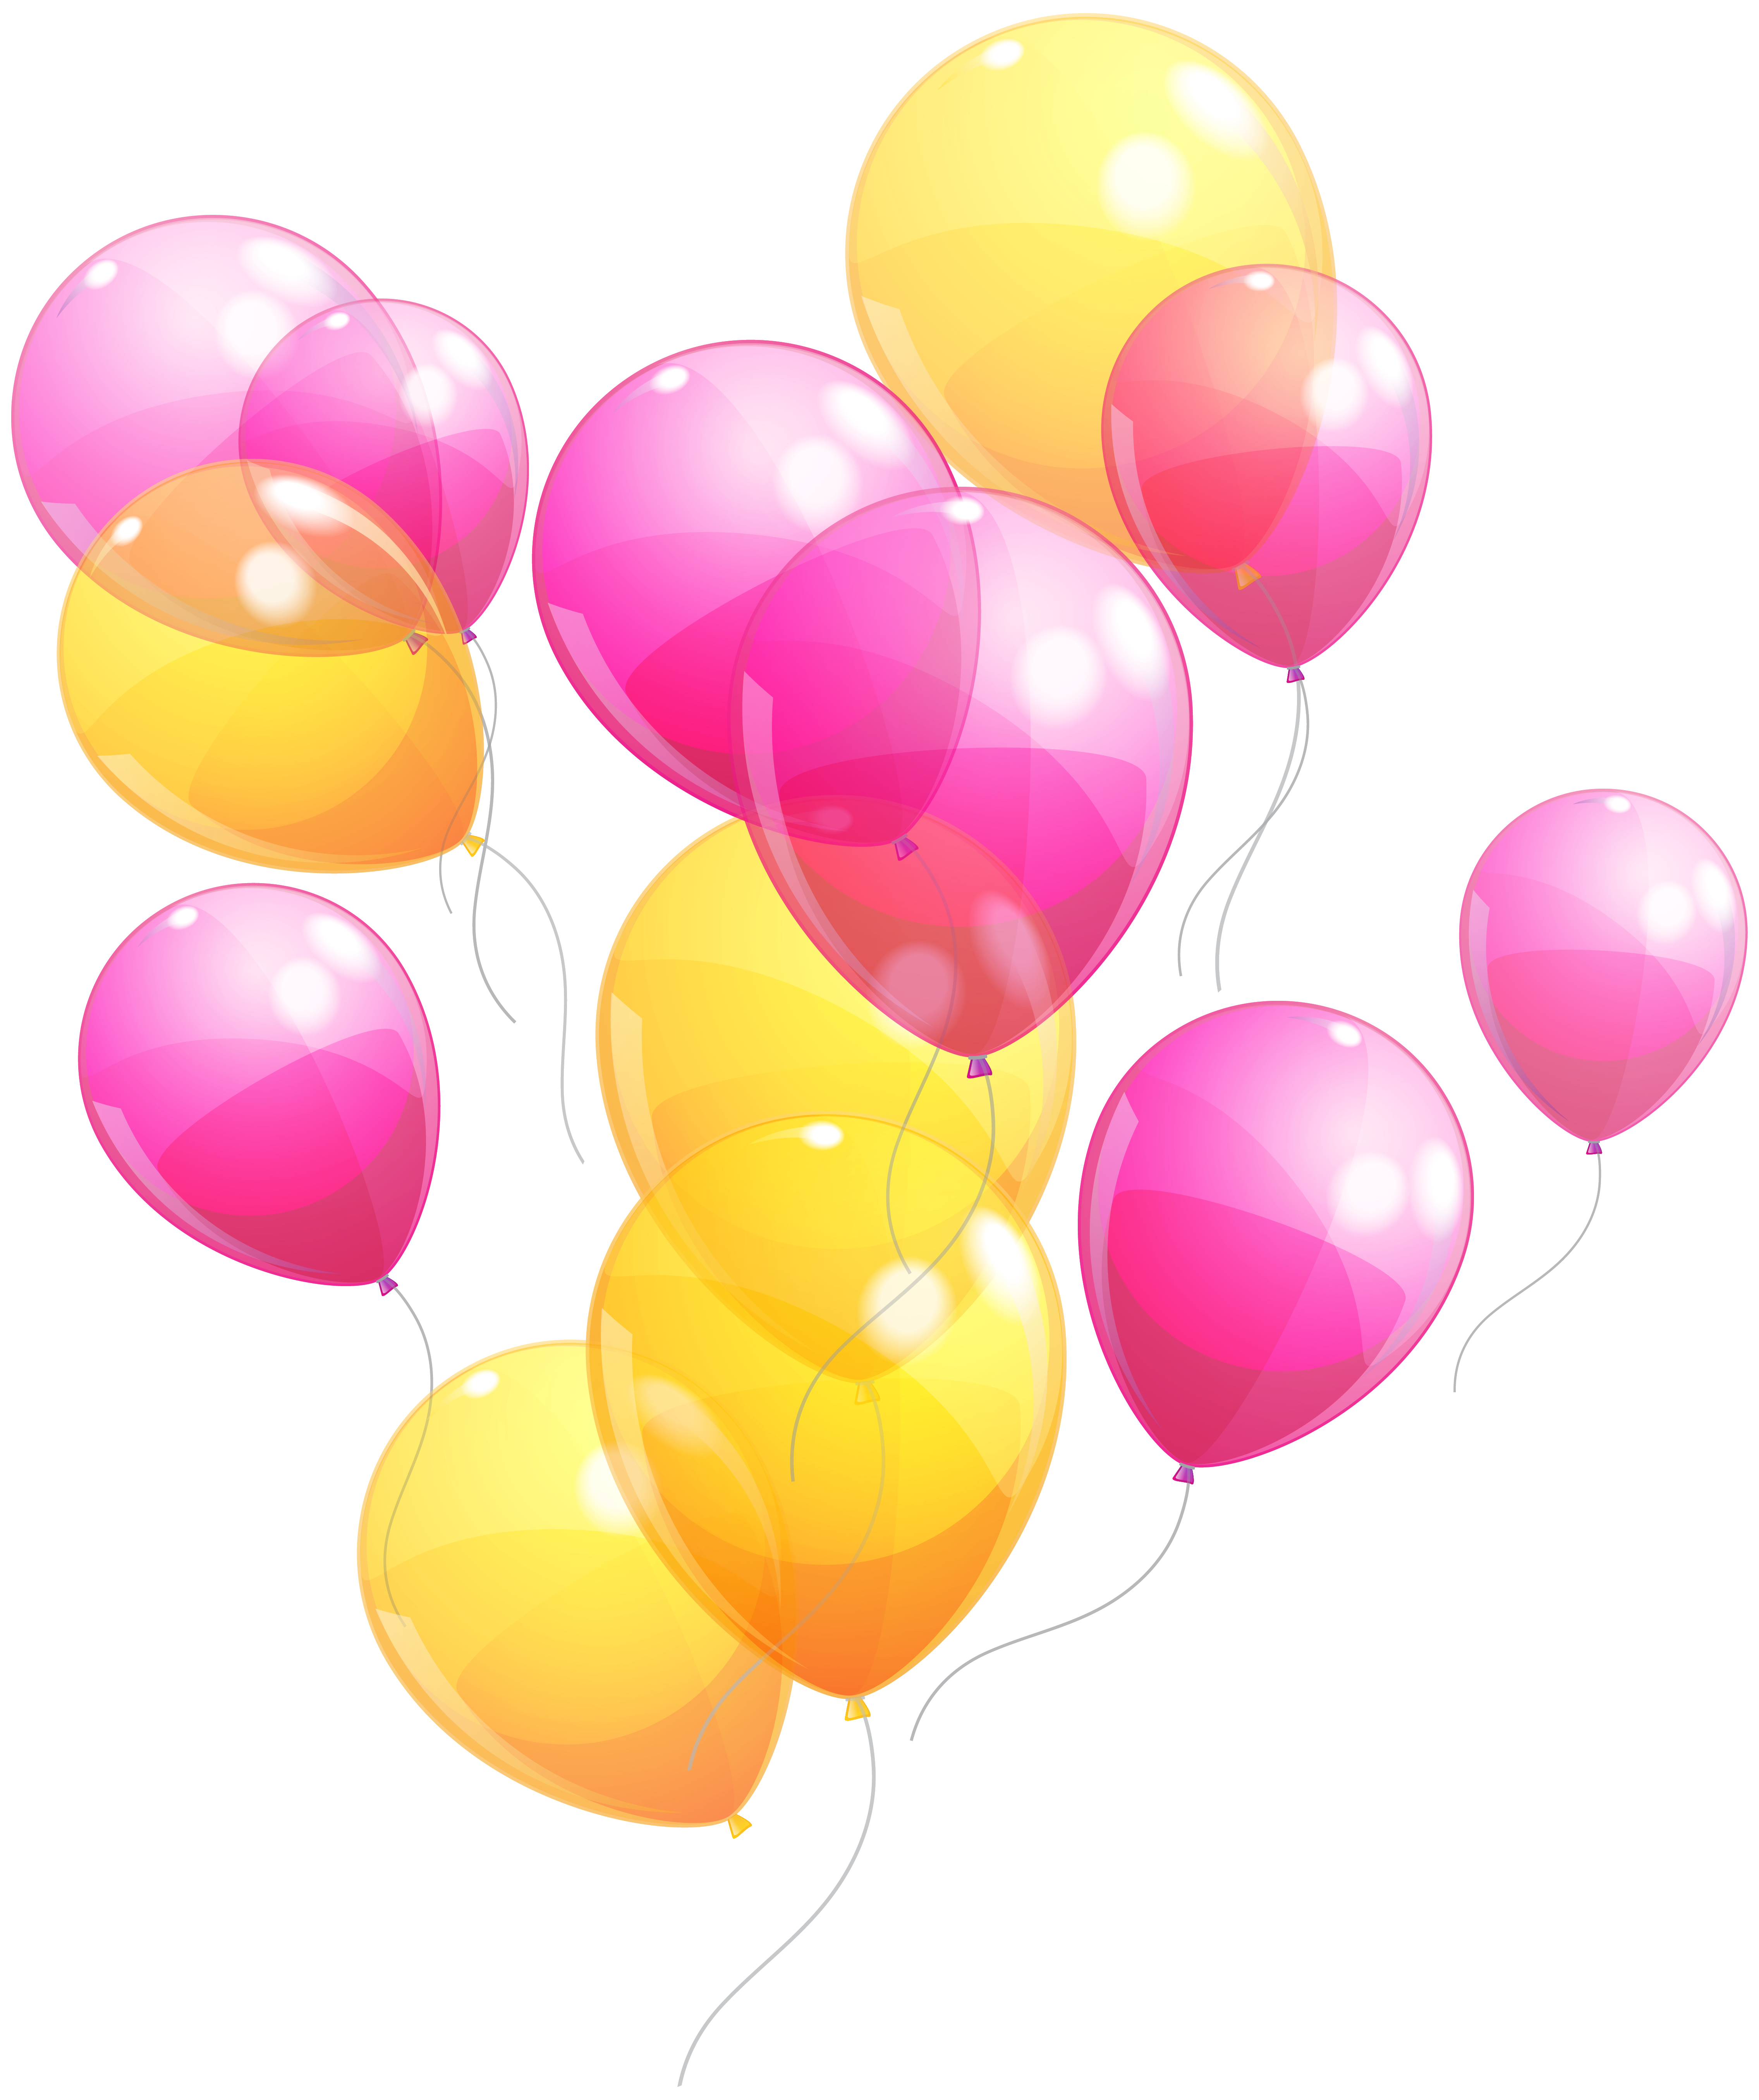 Pink And Yellow Balloons Bunch Png Clipart Image Gallery Yopriceville High Quality Images And Transparent Pn Yellow Balloons Balloons Balloon Illustration